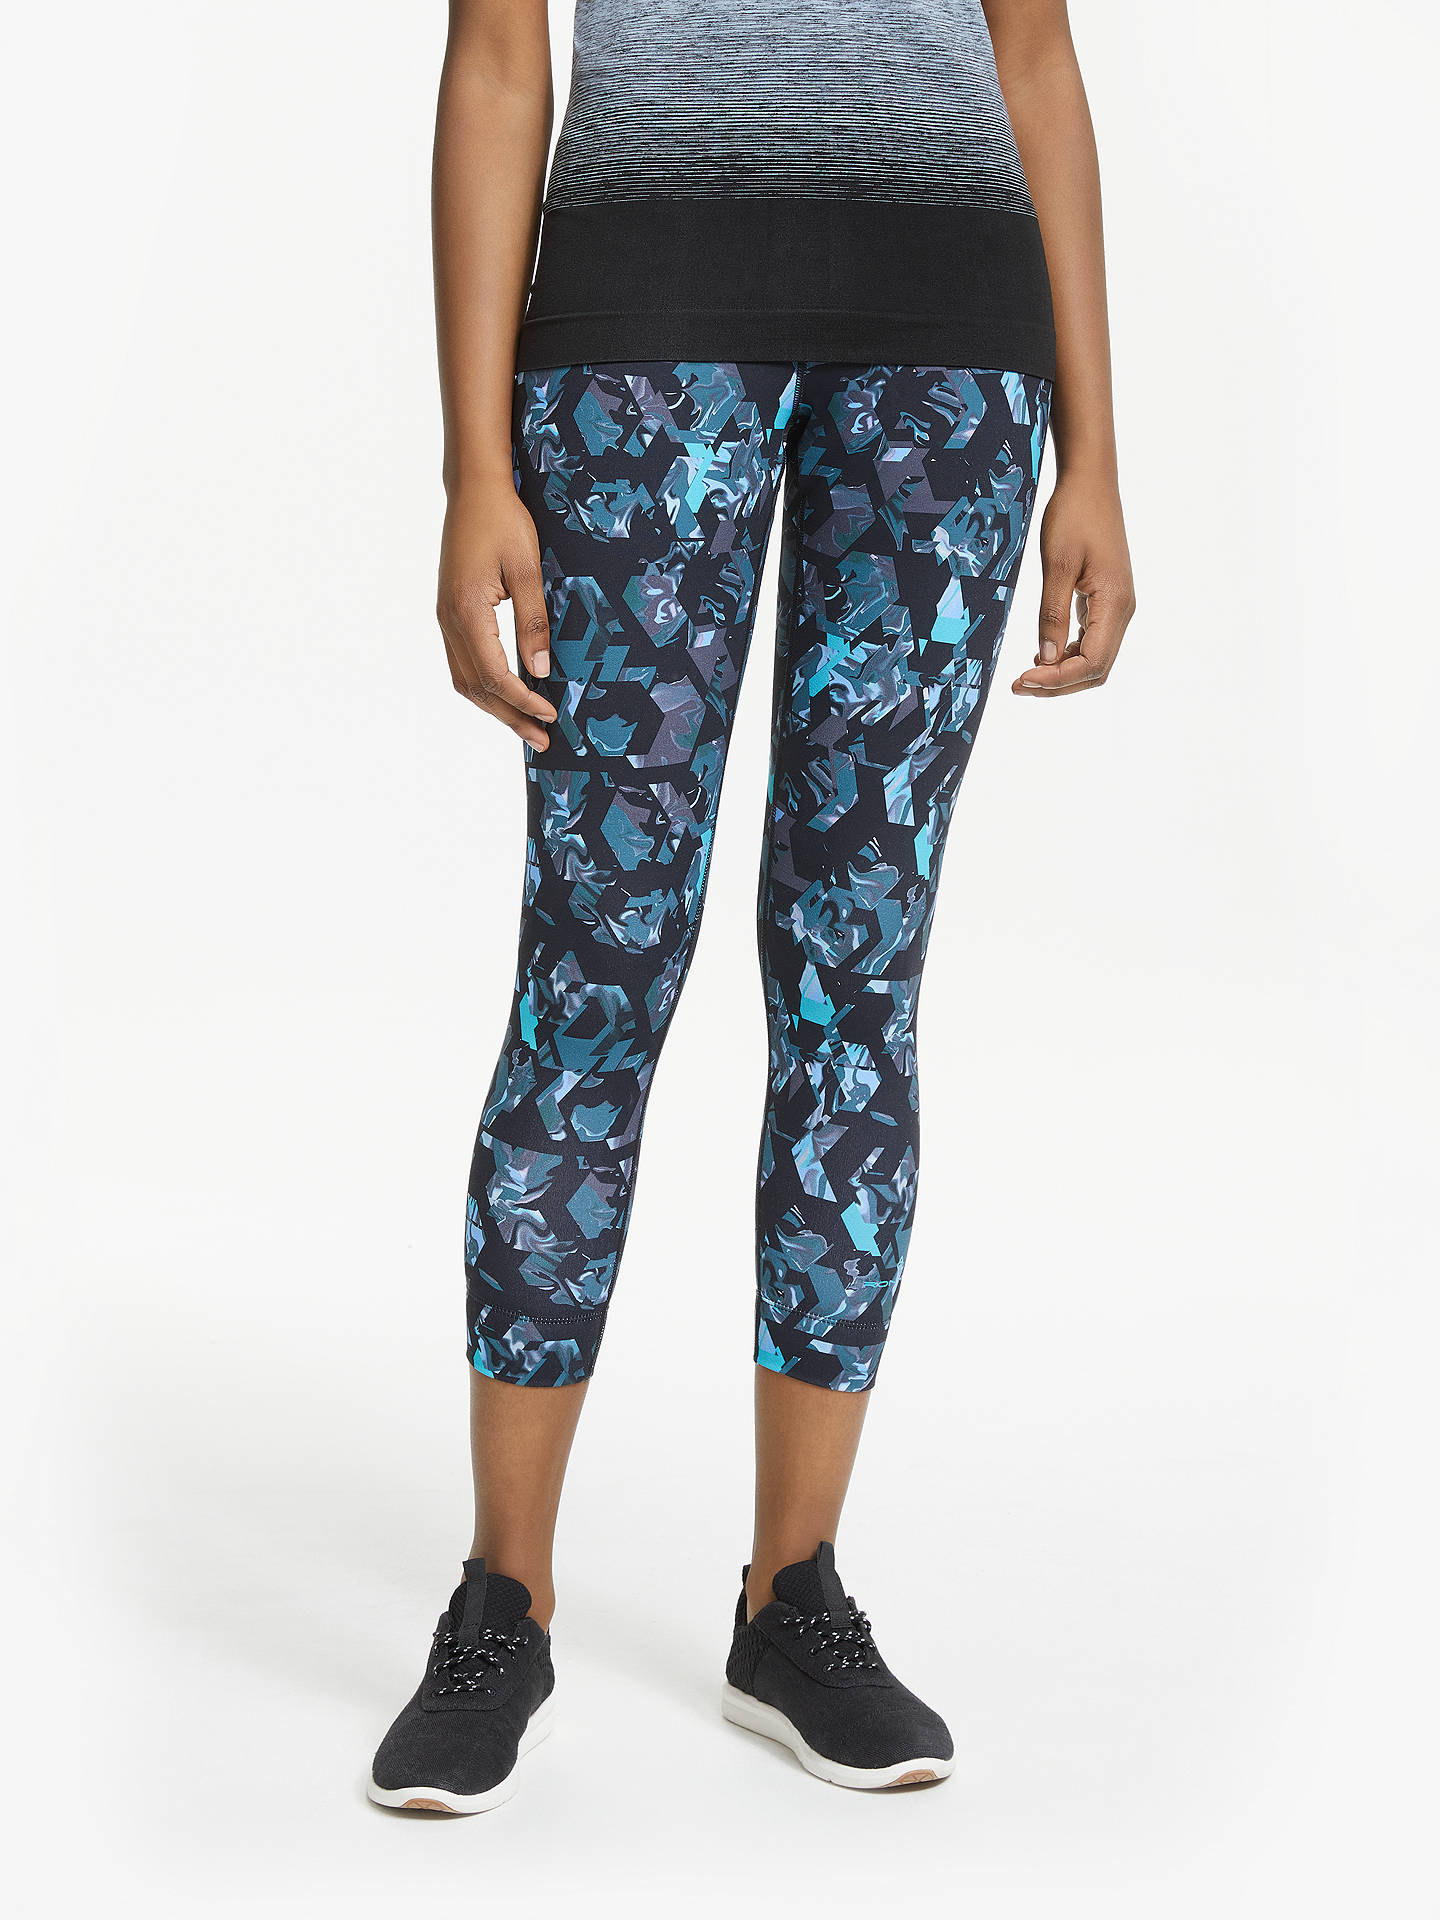 06c570b82ec335 Buy Ronhill Momentum Cropped Running Tights, Blue/Multi, 10 Online at  johnlewis.